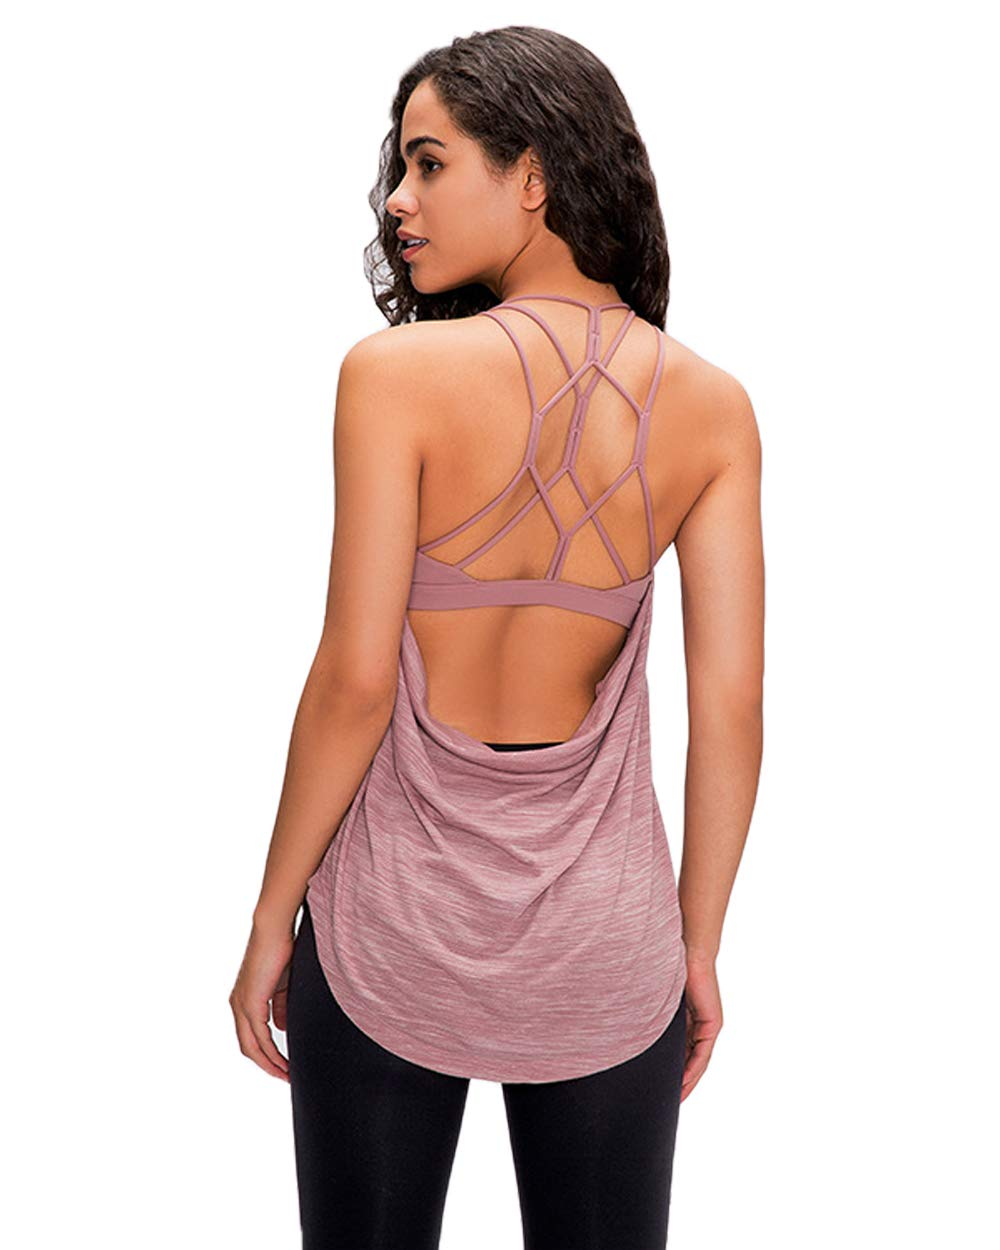 Workout Clothes Yoga Tank Tops for Women Strappy Back Sexy Activewear Running Tops Cross Back Open Shirt YG01